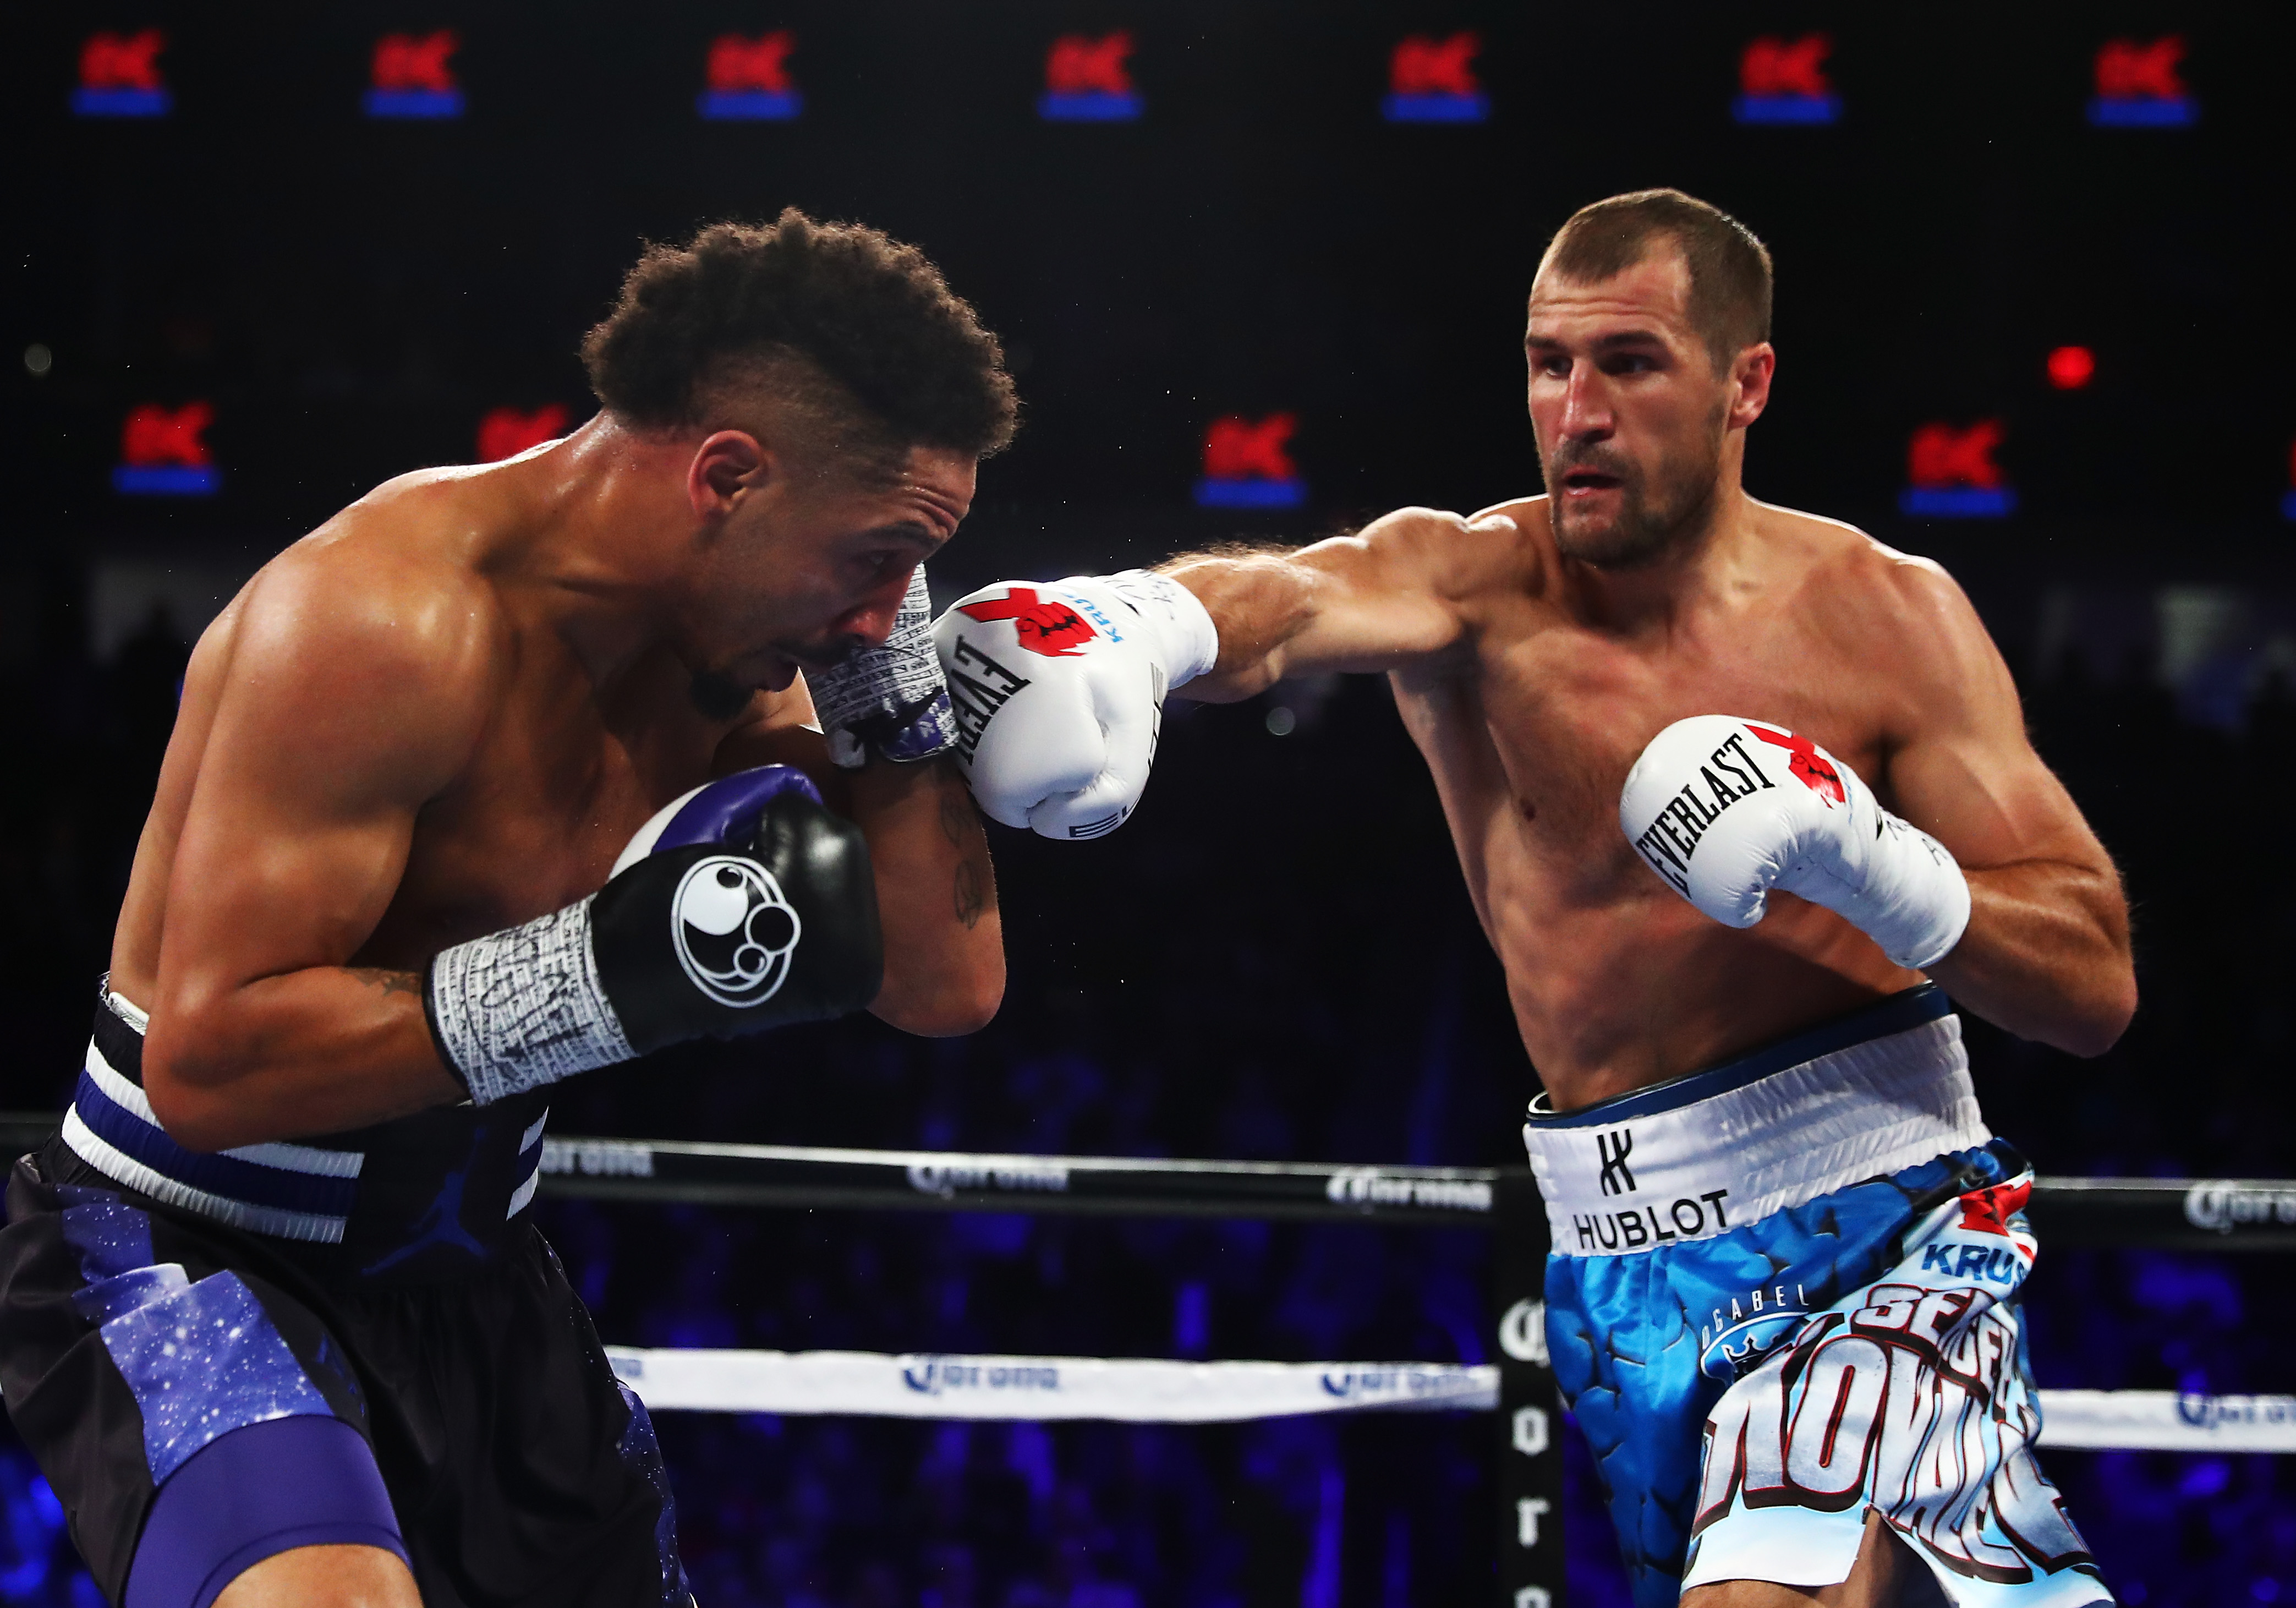 Andre Ward's victory over Sergey Kovalev comes with controversy